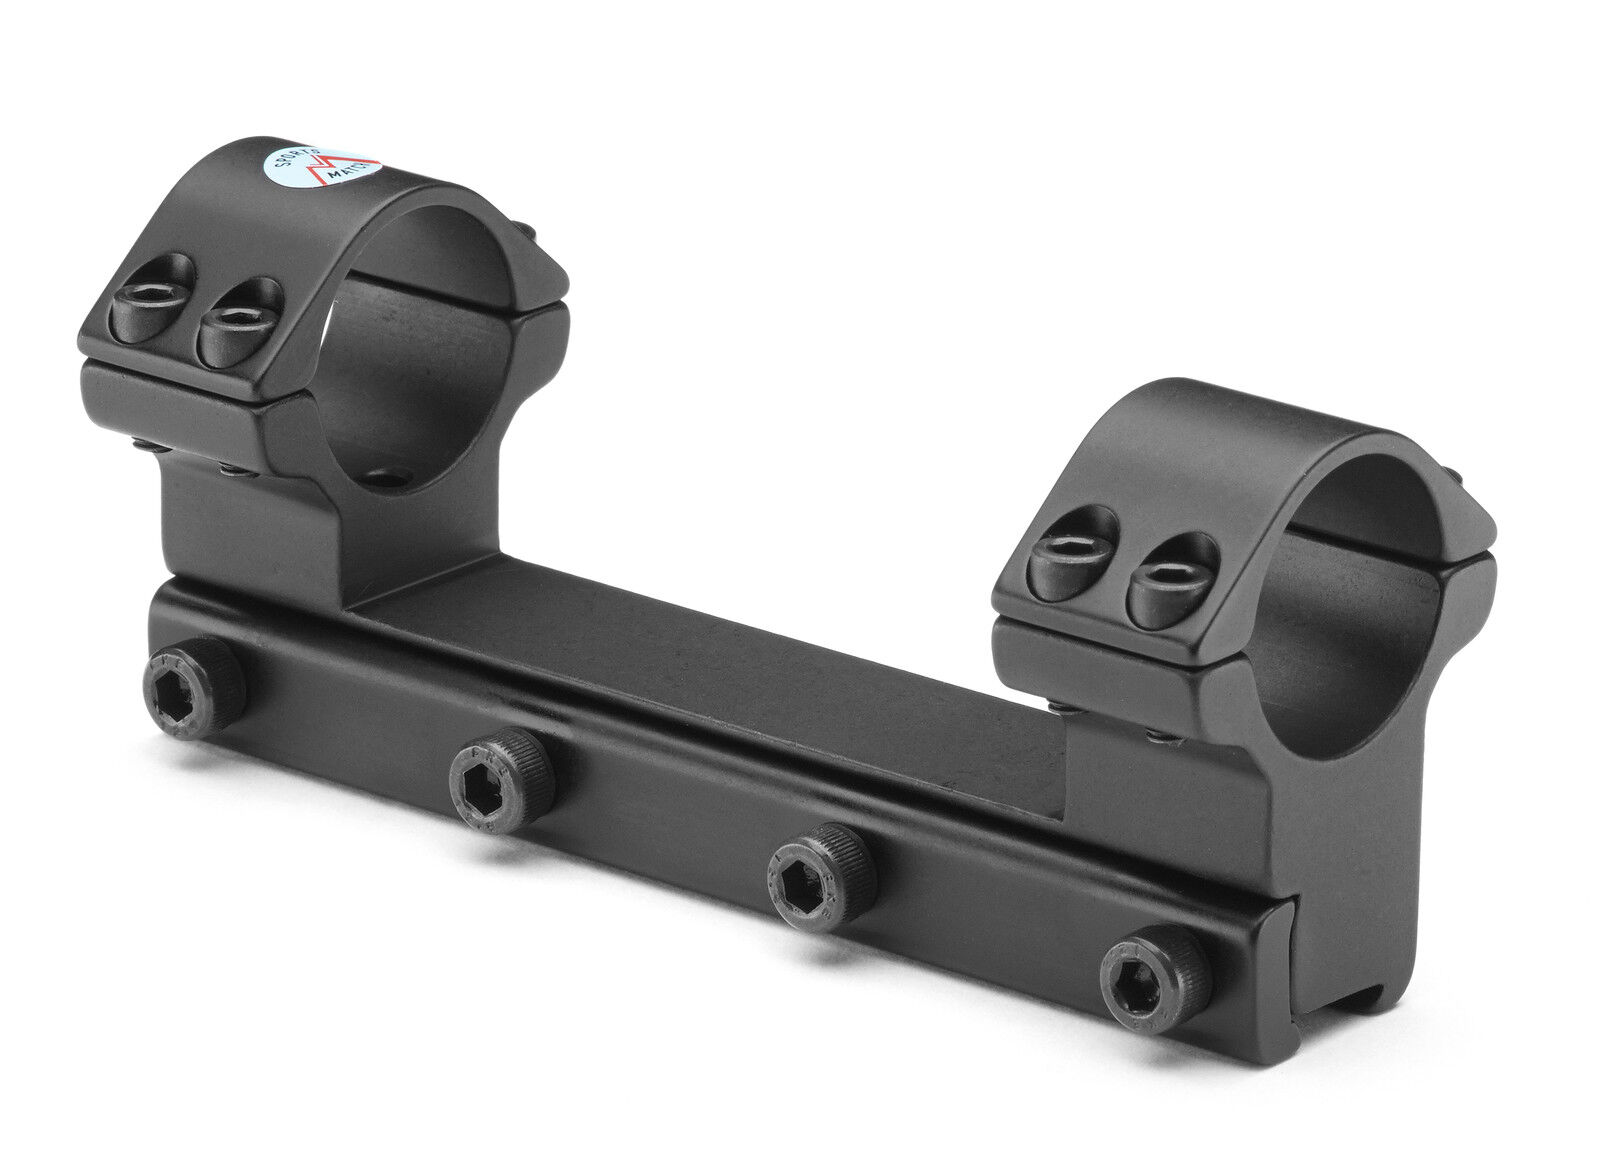 SPORTSMATCH HOP26C ONE PIECE 1  Double Screw Mount for 9.5 -11.5mm dovetails